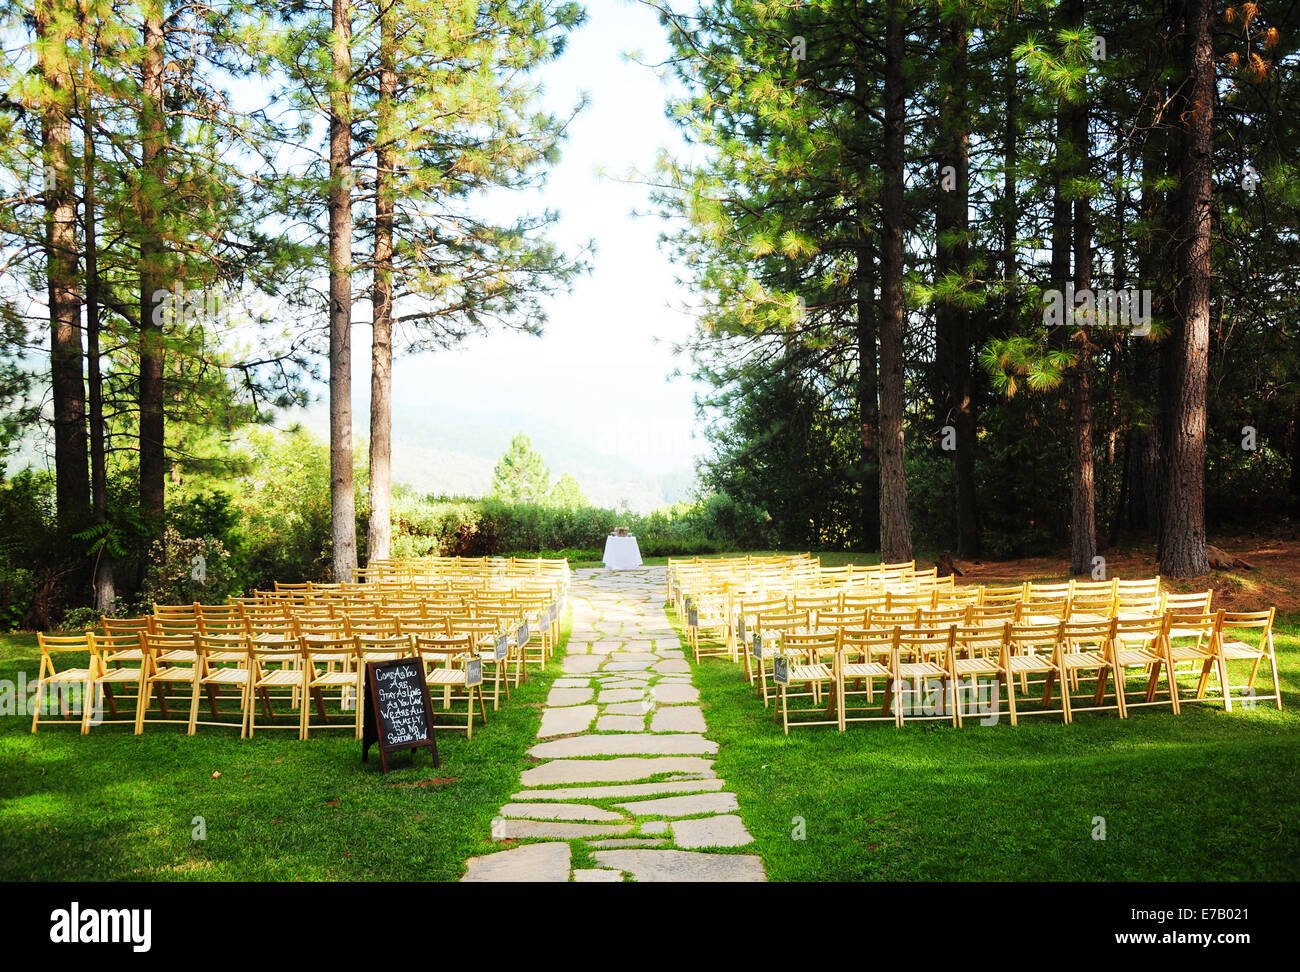 Wedding ceremony chair - A Mountain Top Wedding Ceremony Full Of Wooden Chairs In A Forest Clearing